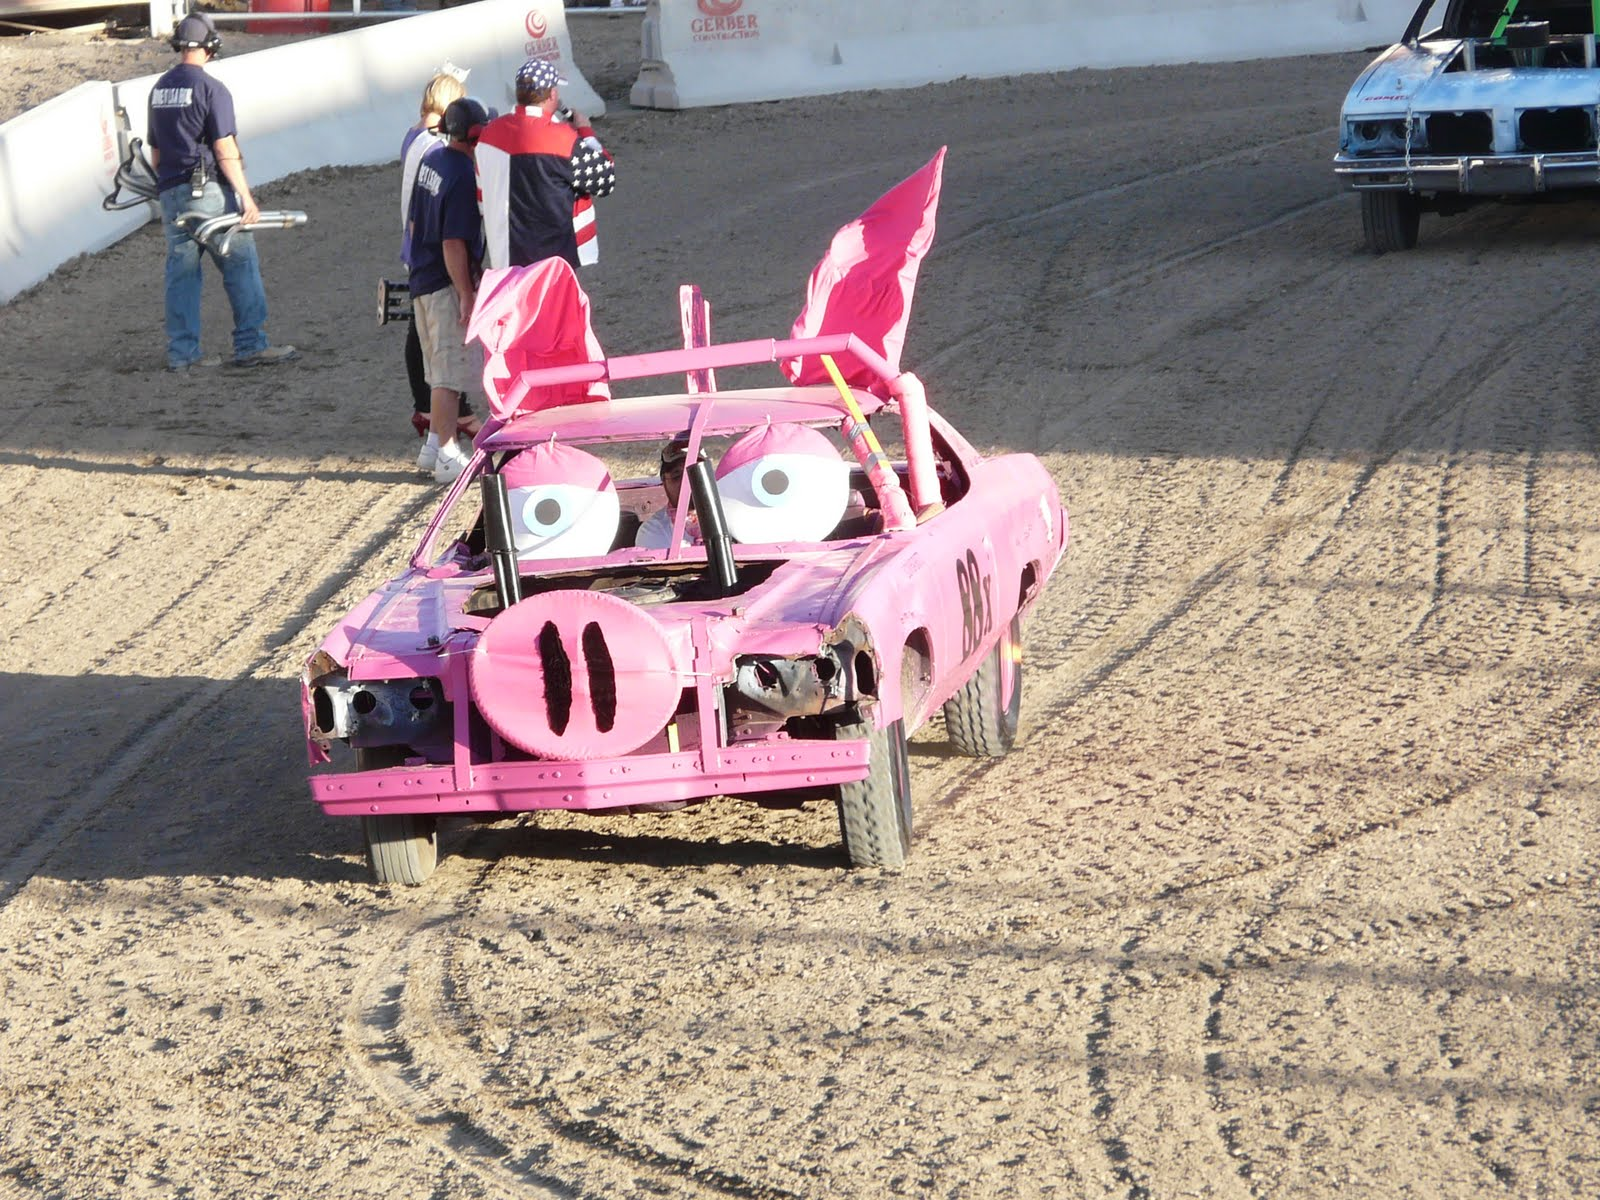 Demolition Derby Cars Paint Job